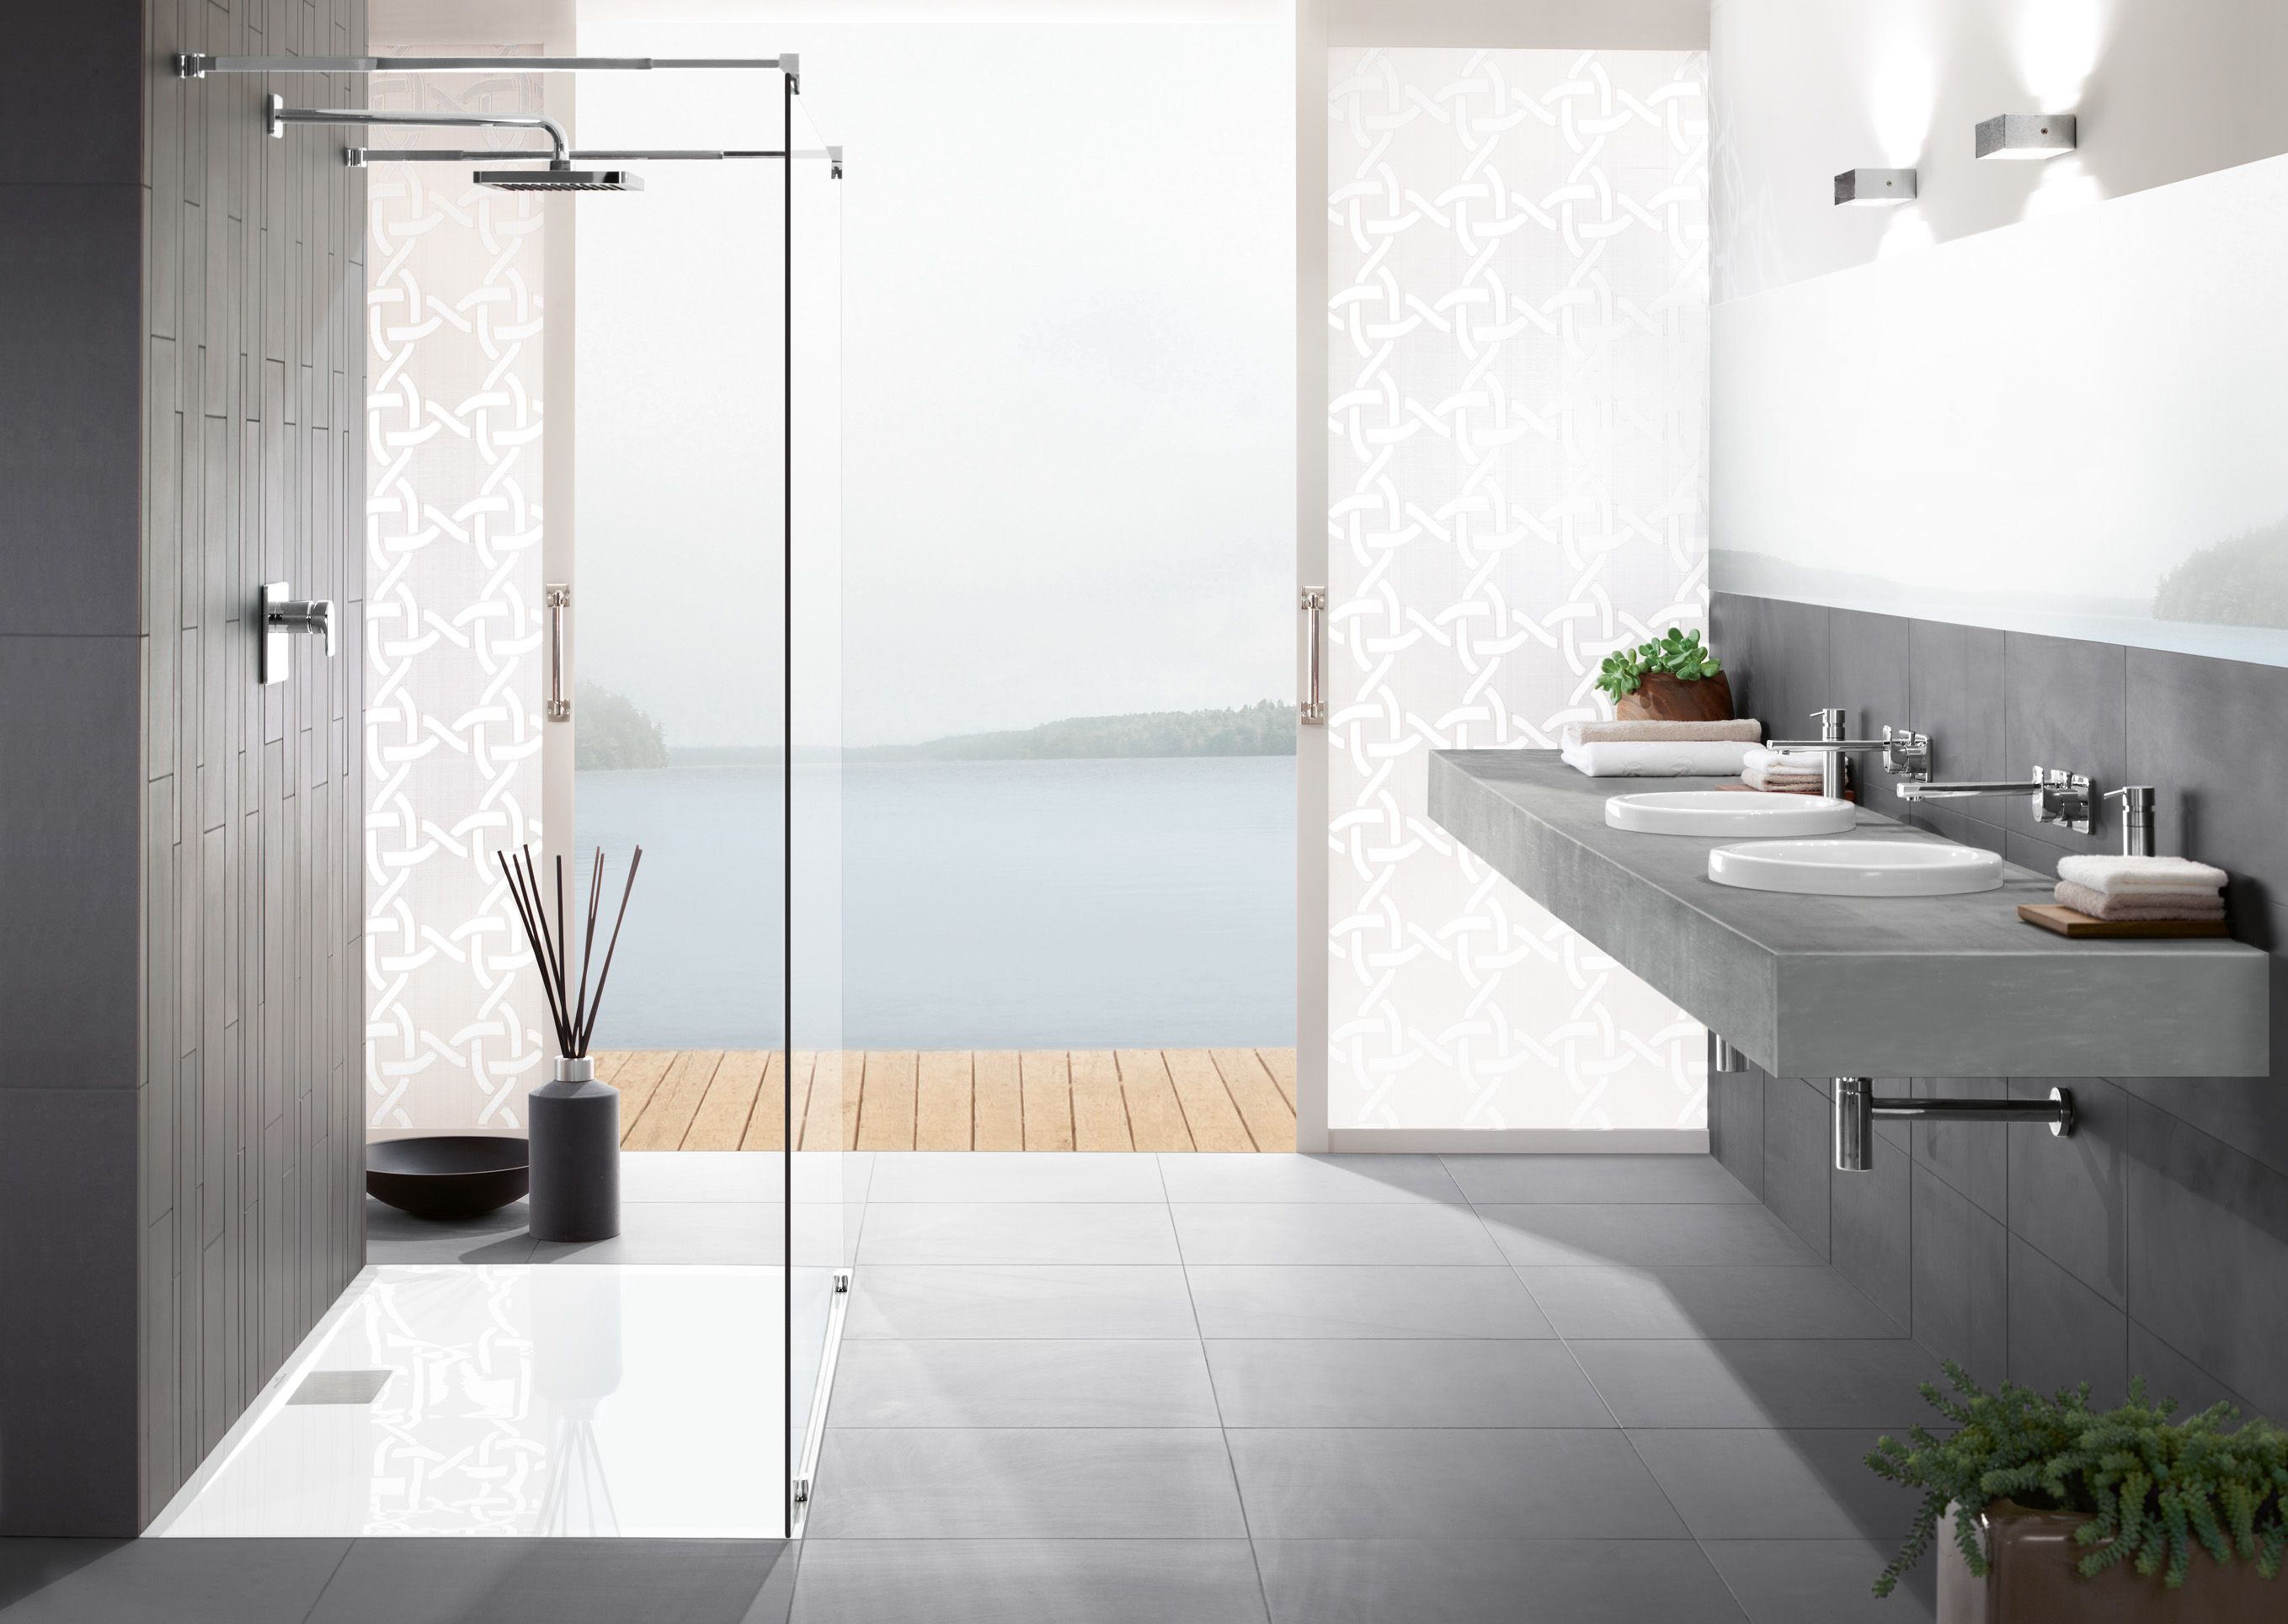 What a sight! The open shower with flat shower tray lends the room ...